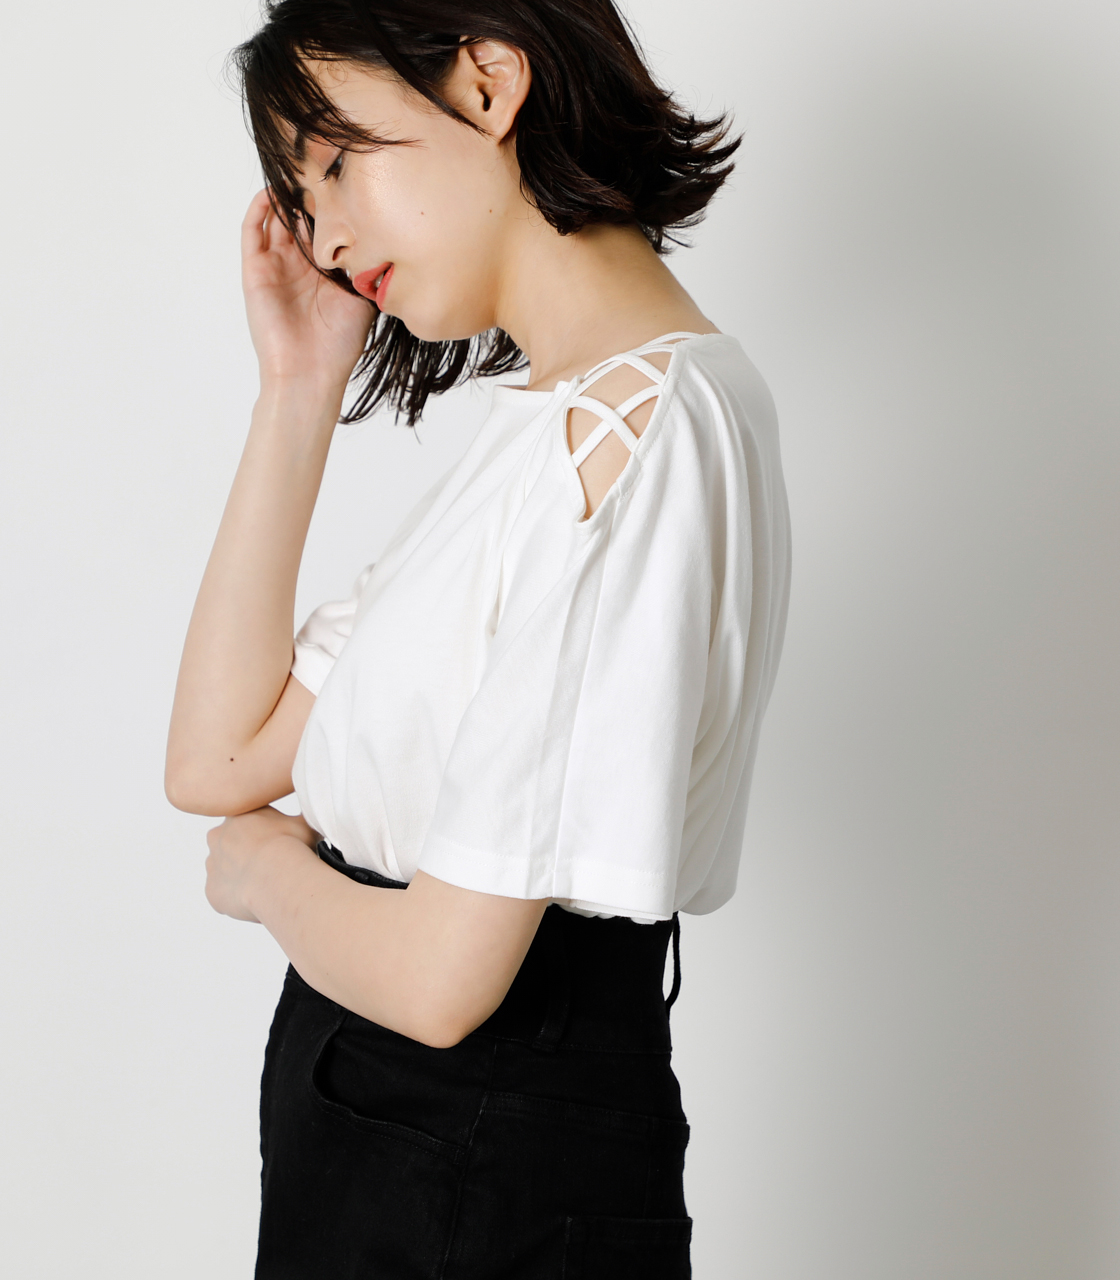 SHOULDER LACE UP TOPS/ショルダーレースアップトップス 詳細画像 O/WHT 2